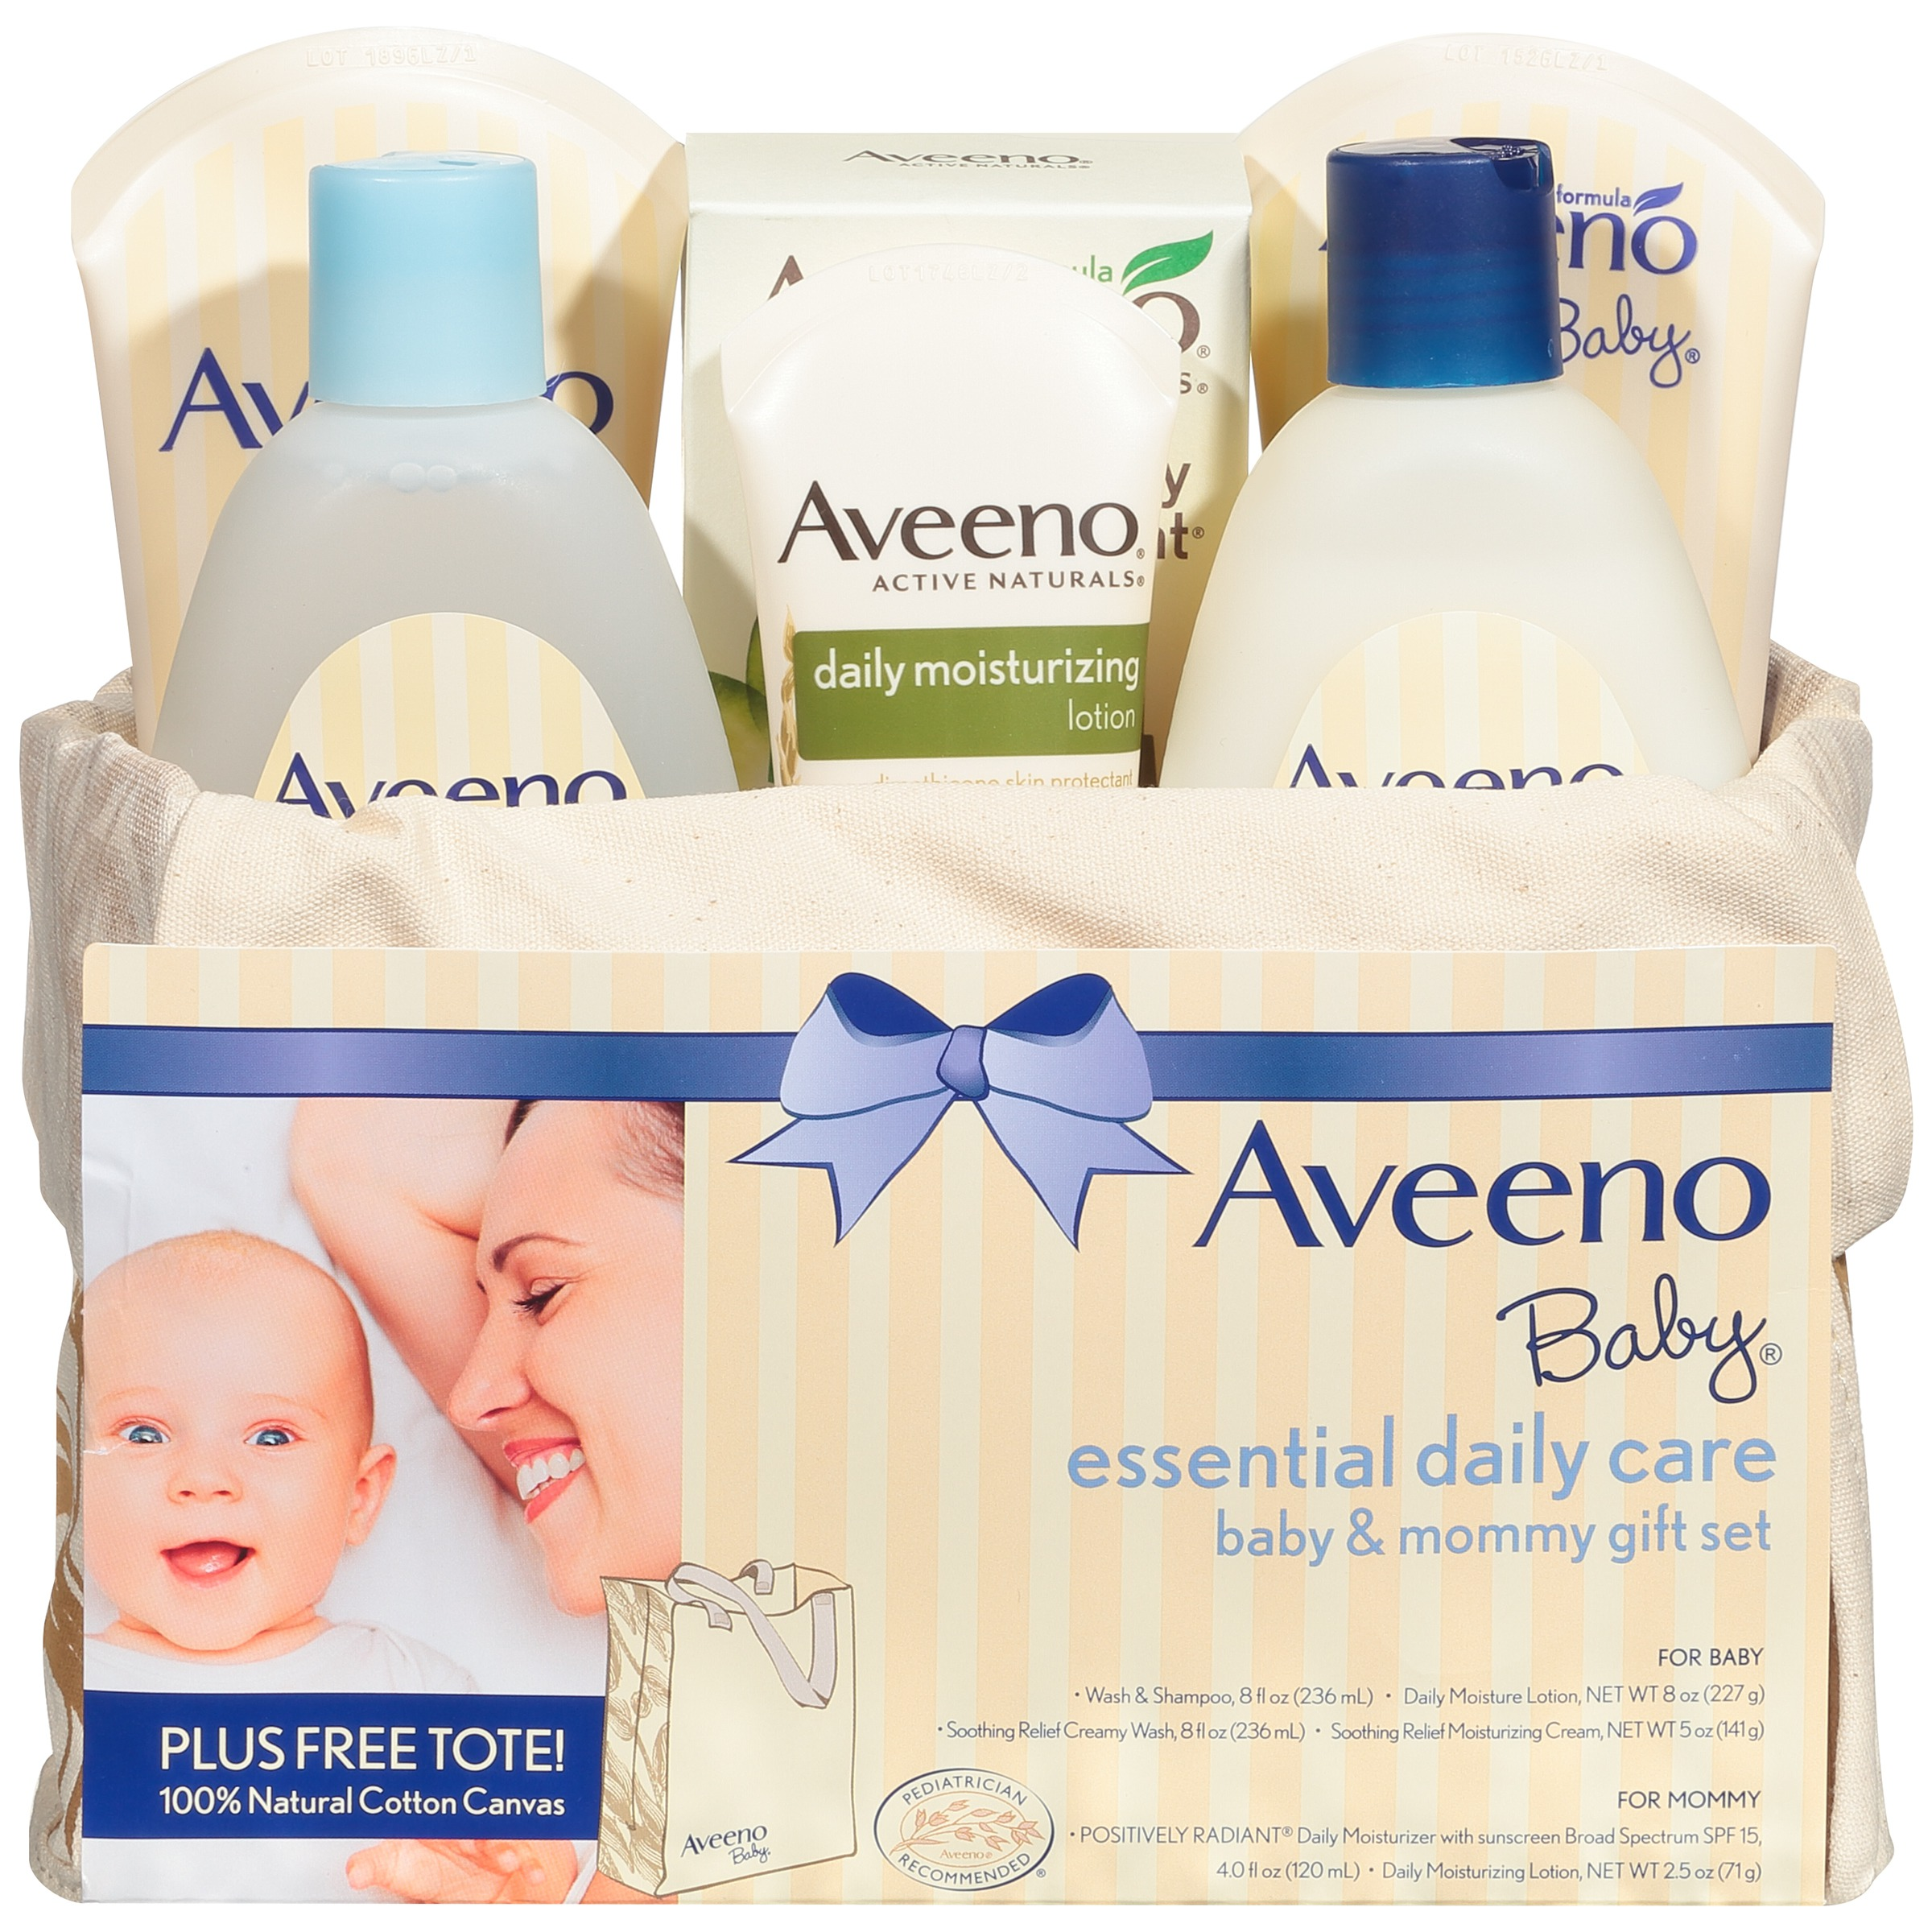 Aveeno Baby Mommy & Me Gift Set, Baby Skin Care Products by Johnson & Johnson Consumer Inc.